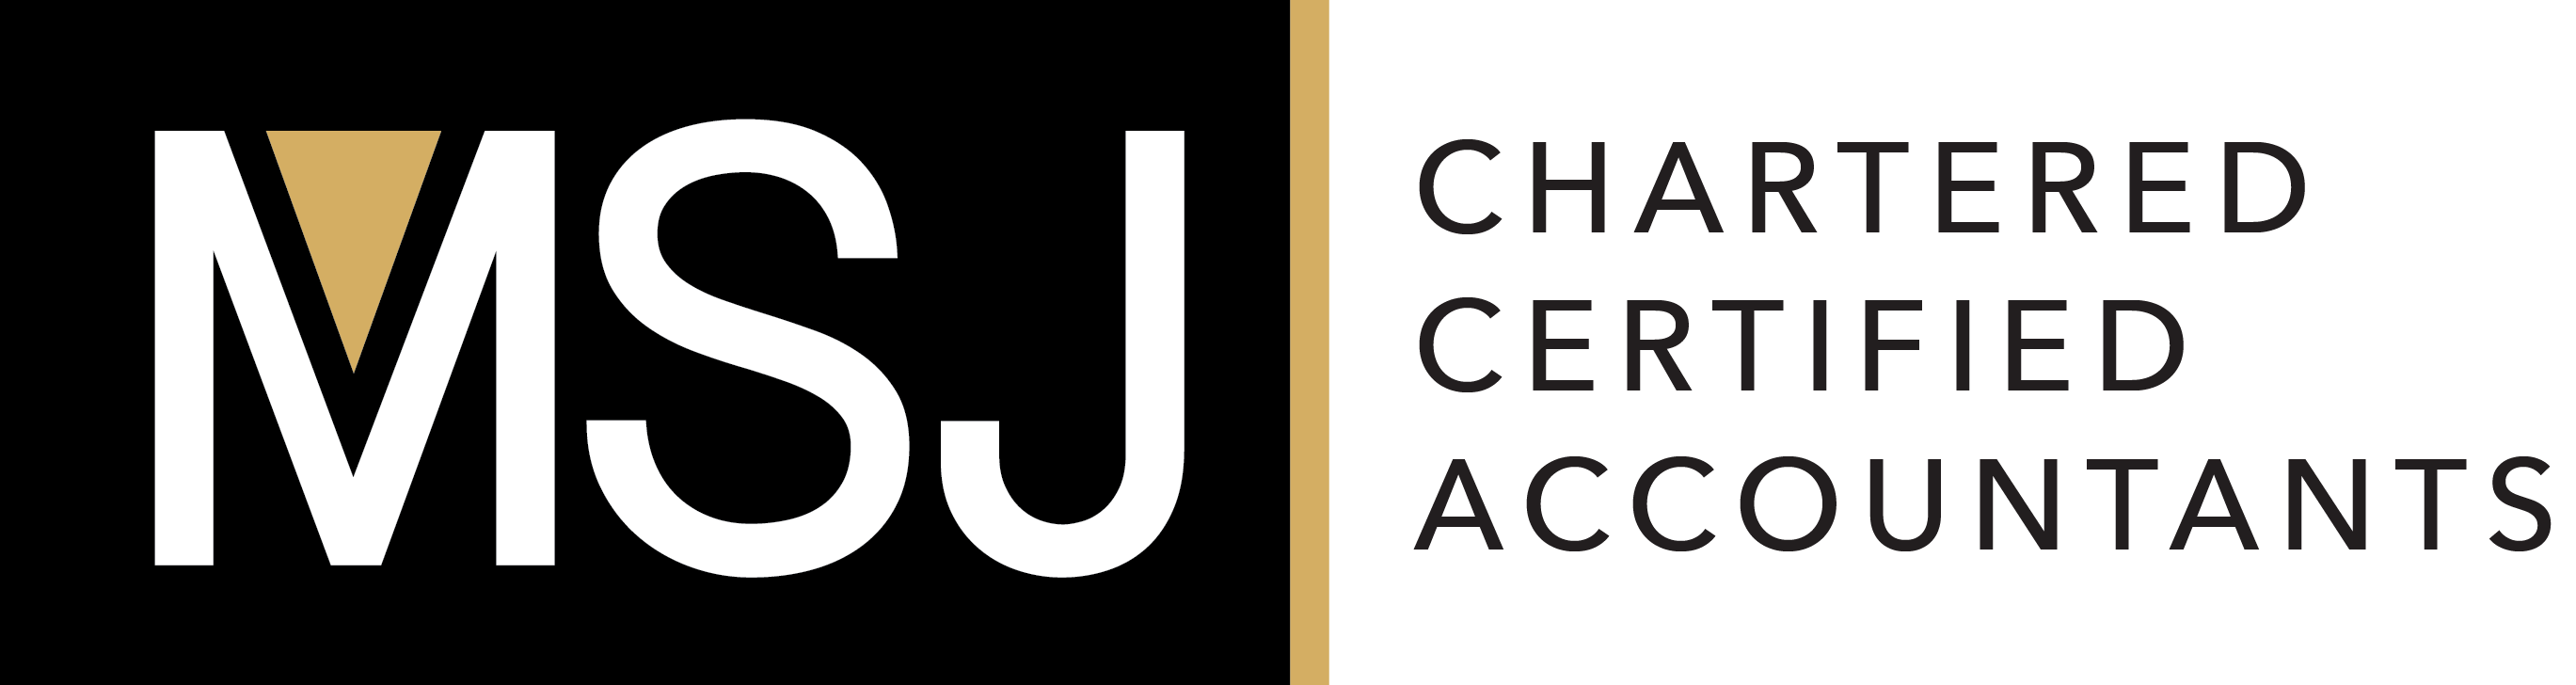 MSJ Chartered Certified Accountants